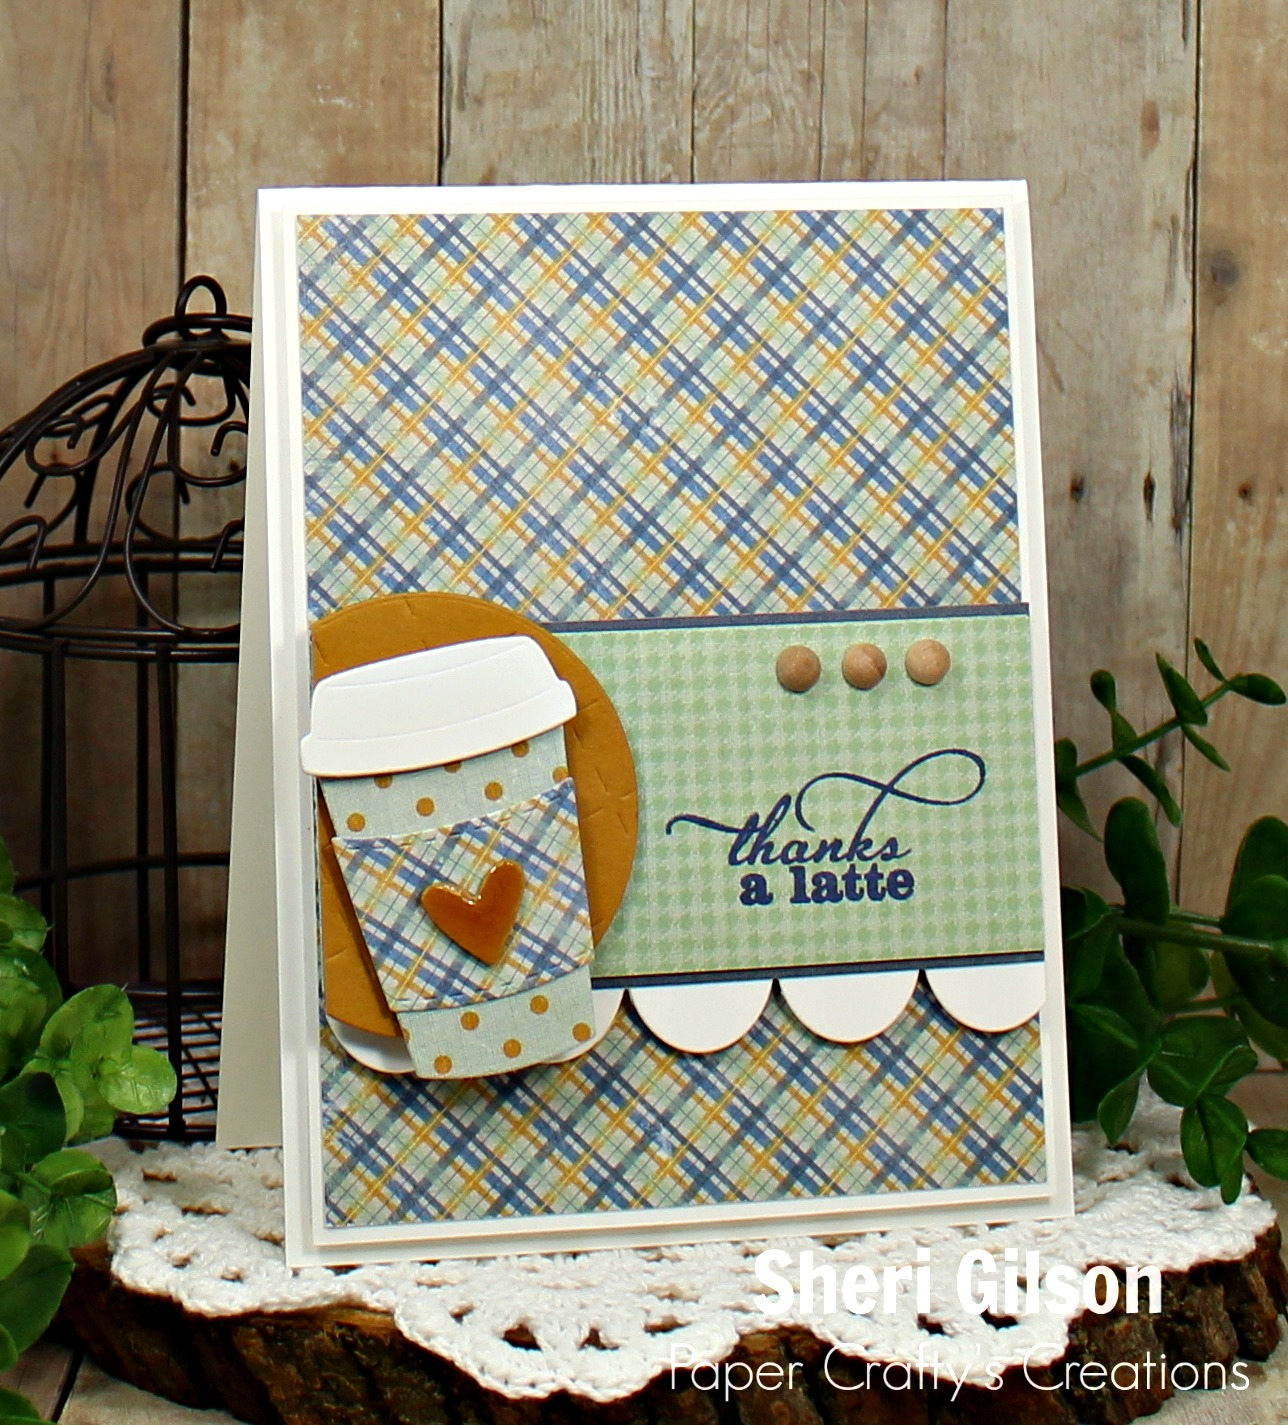 Paper Crafty's Creations : Fall Coffee Lovers Blog Hop